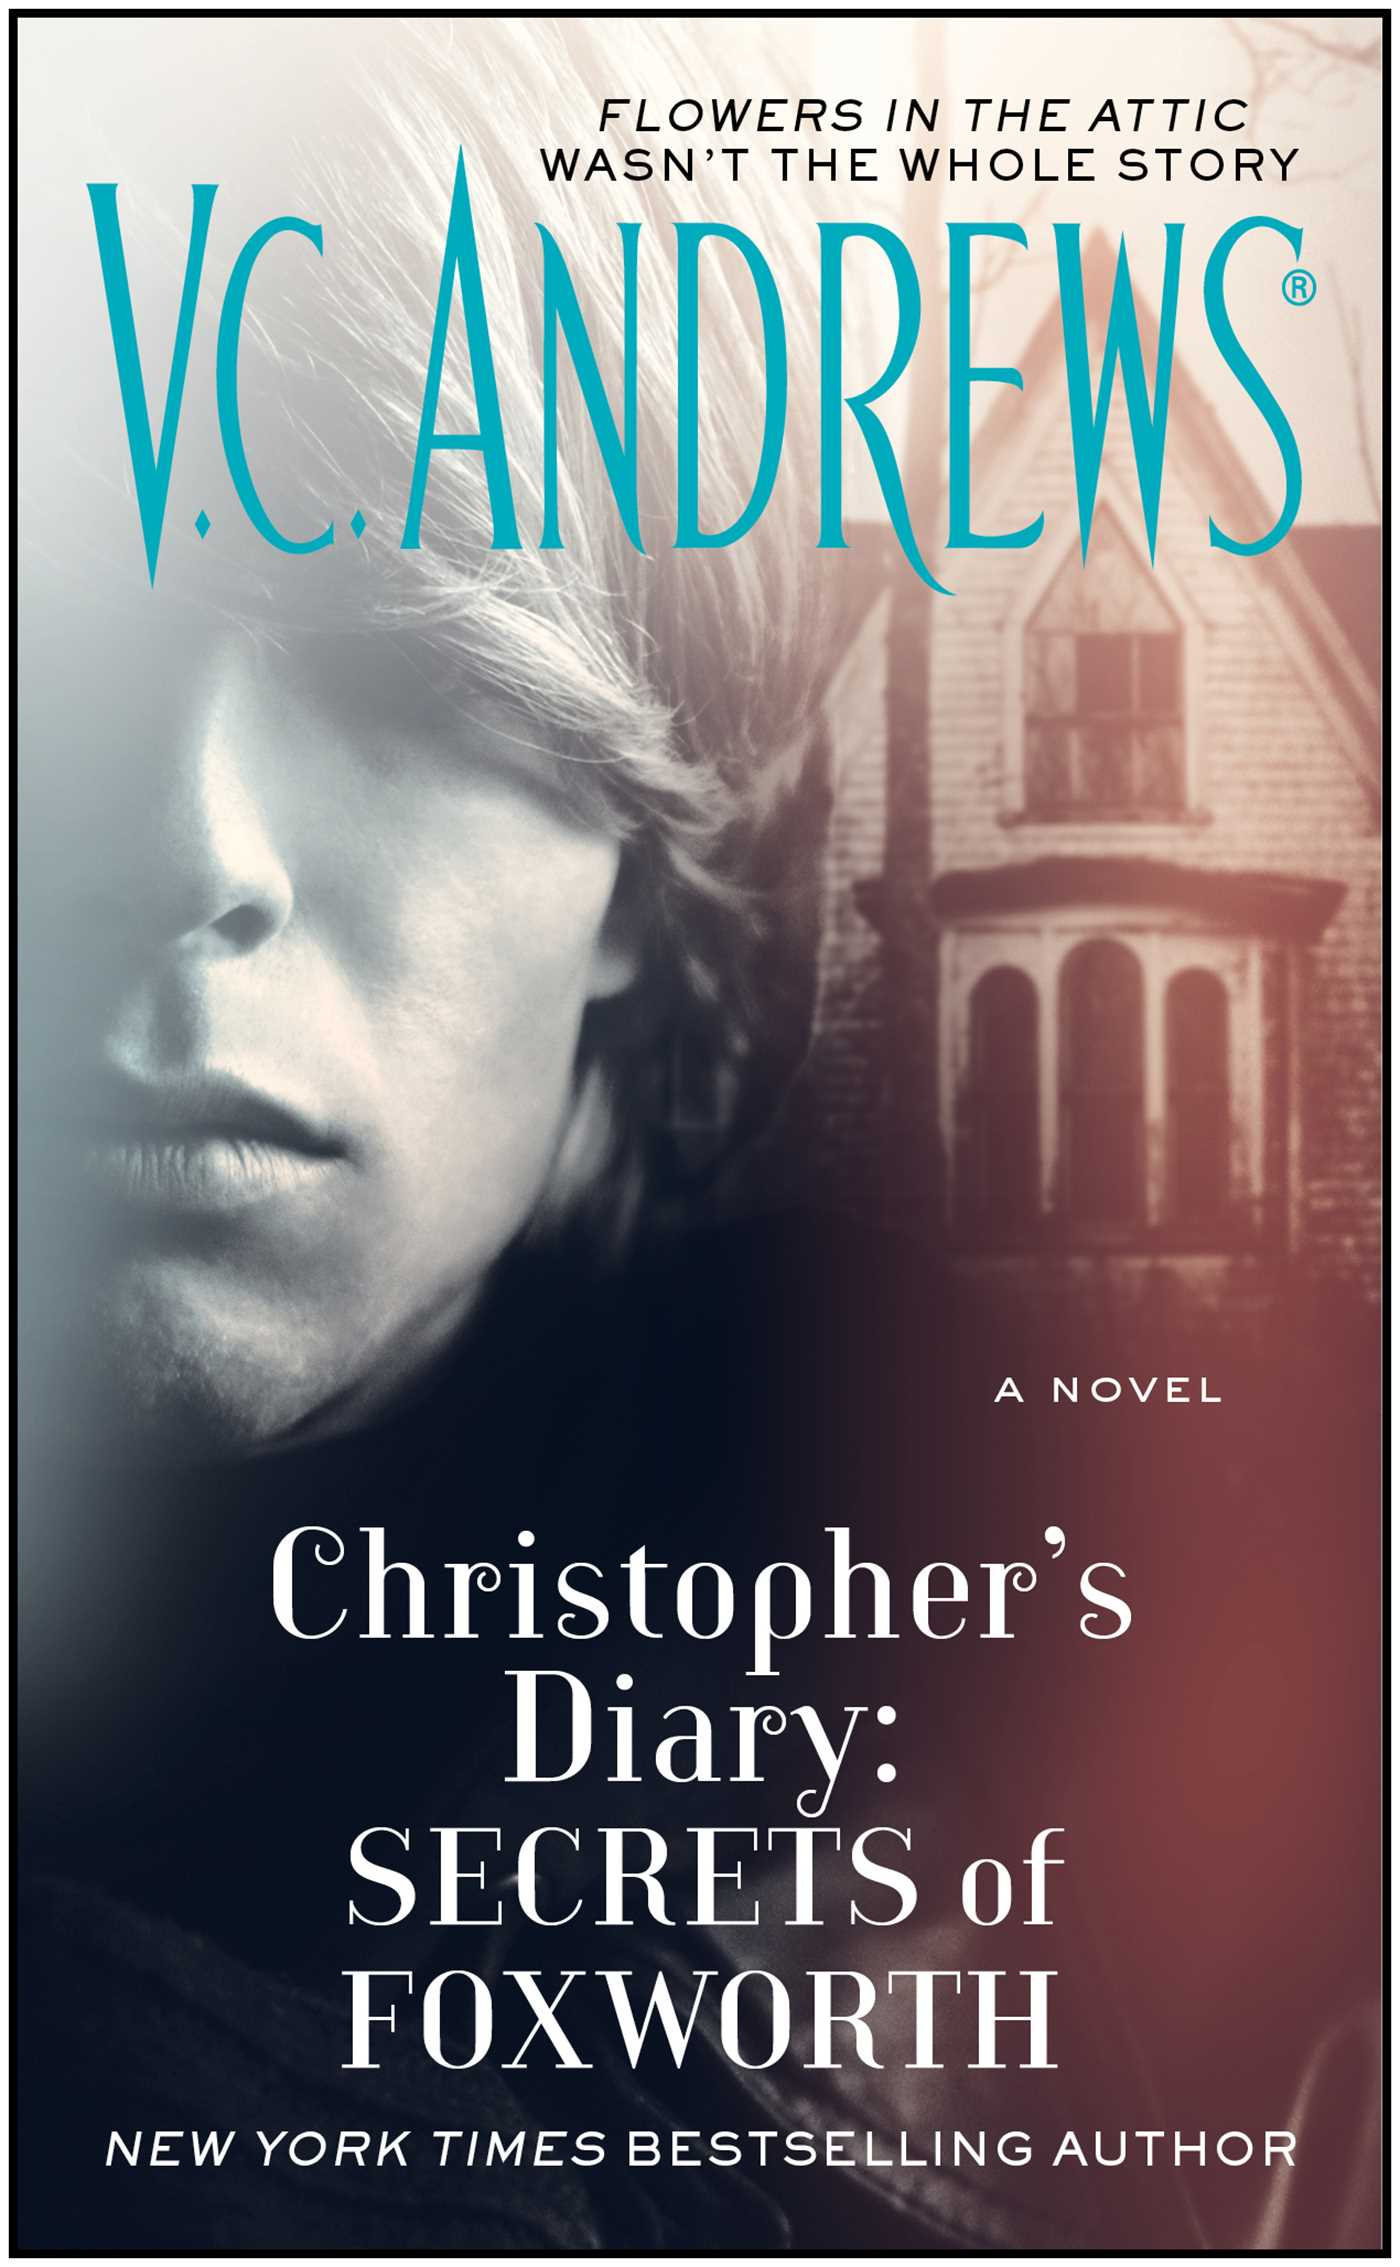 Book Cover Image (jpg): Christopher's Diary: Secrets of Foxworth